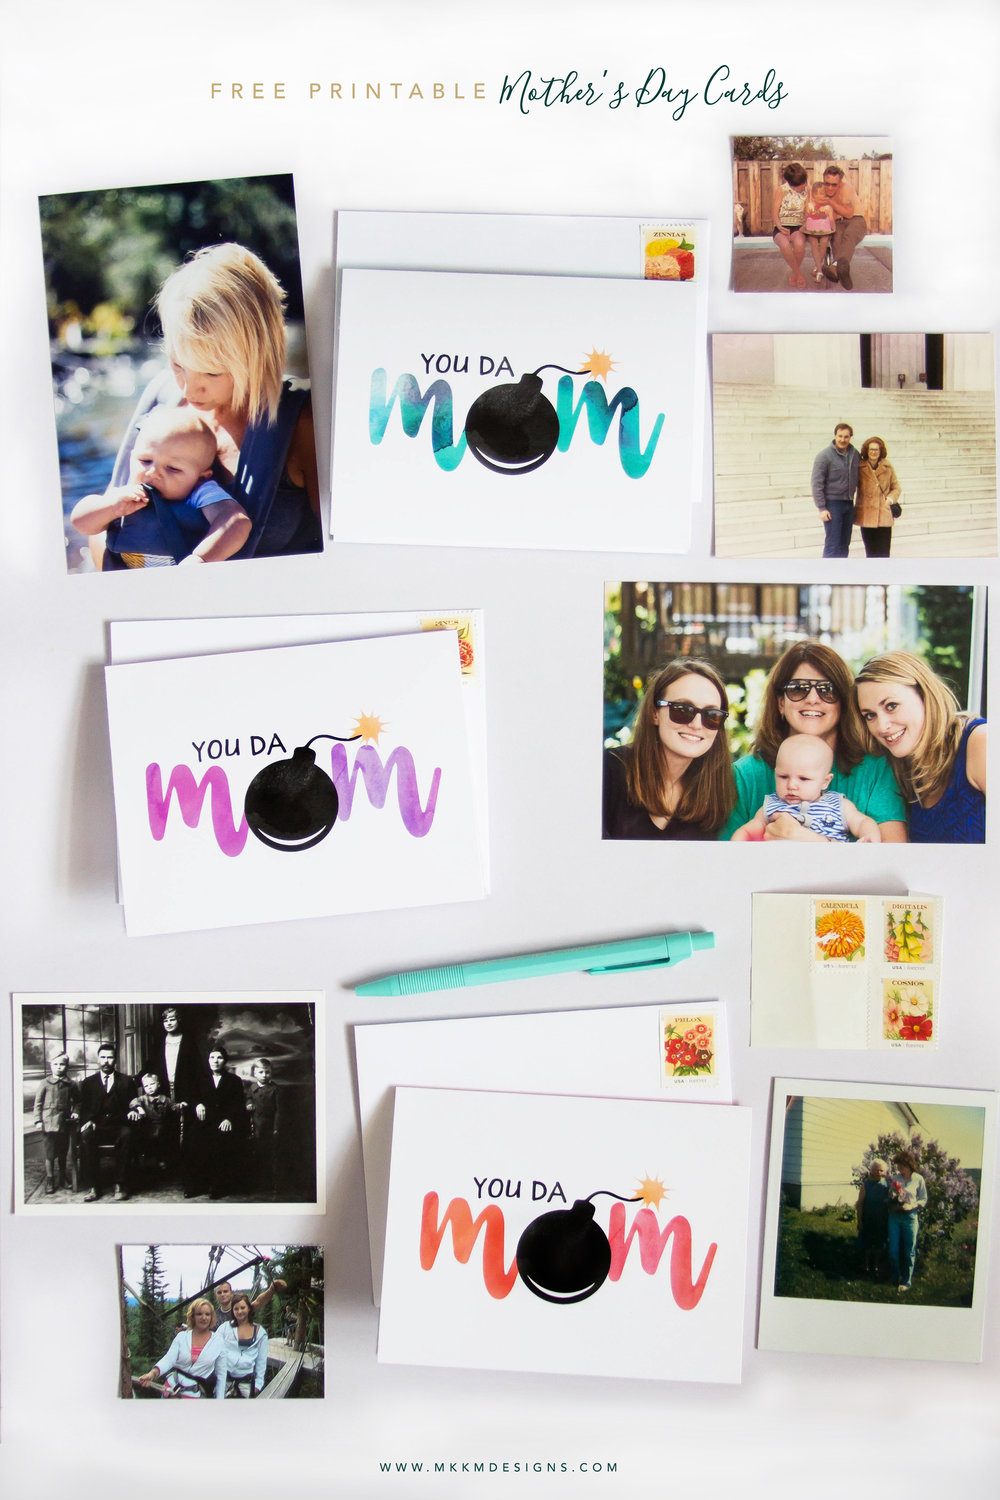 You da Mom mothers day card printable by MKKM Designs